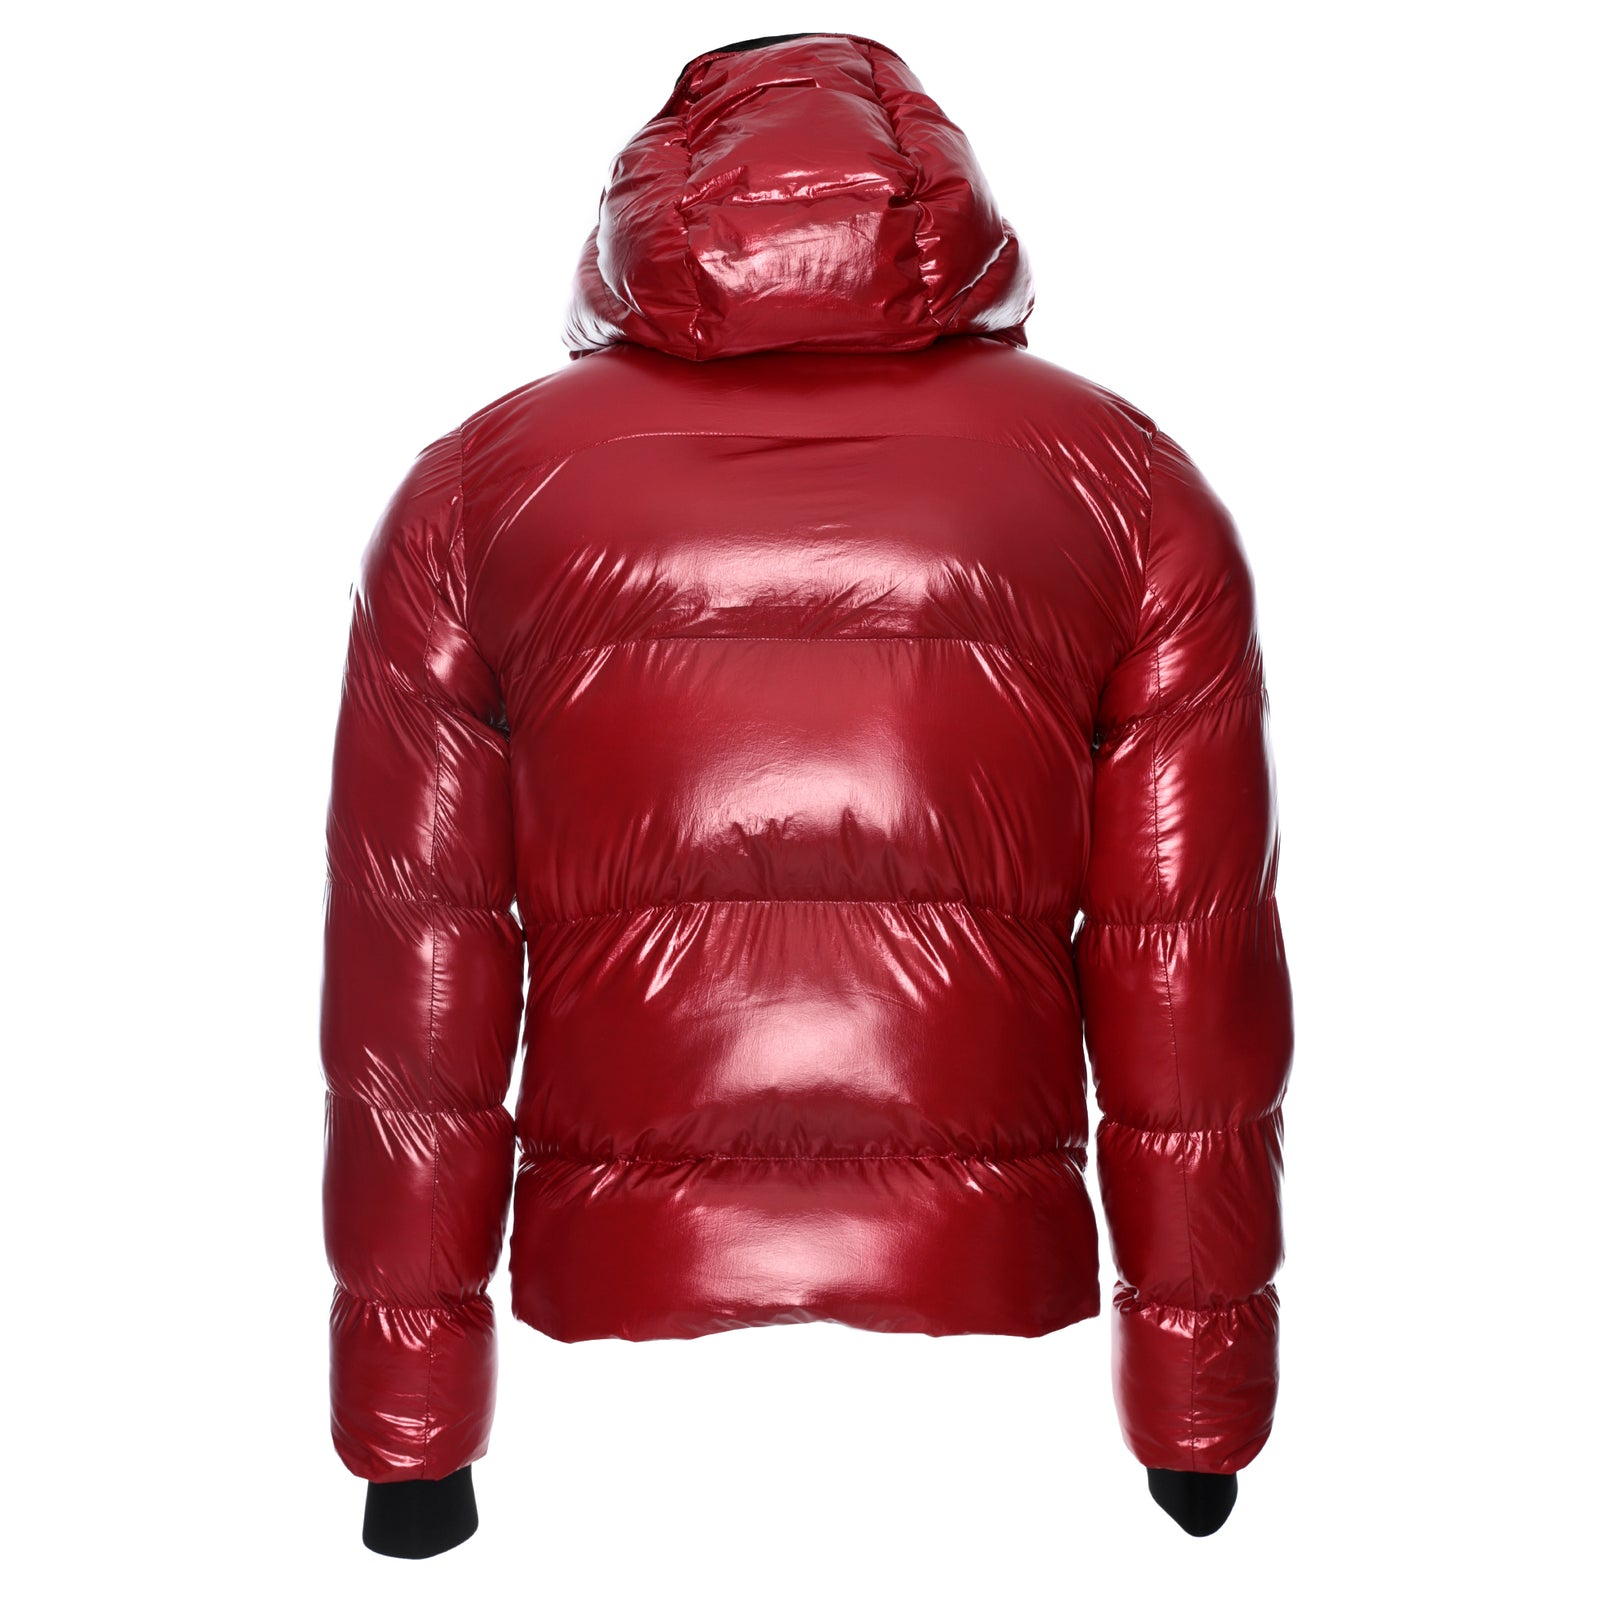 7th Heaven Men's Puffa Jacket Red